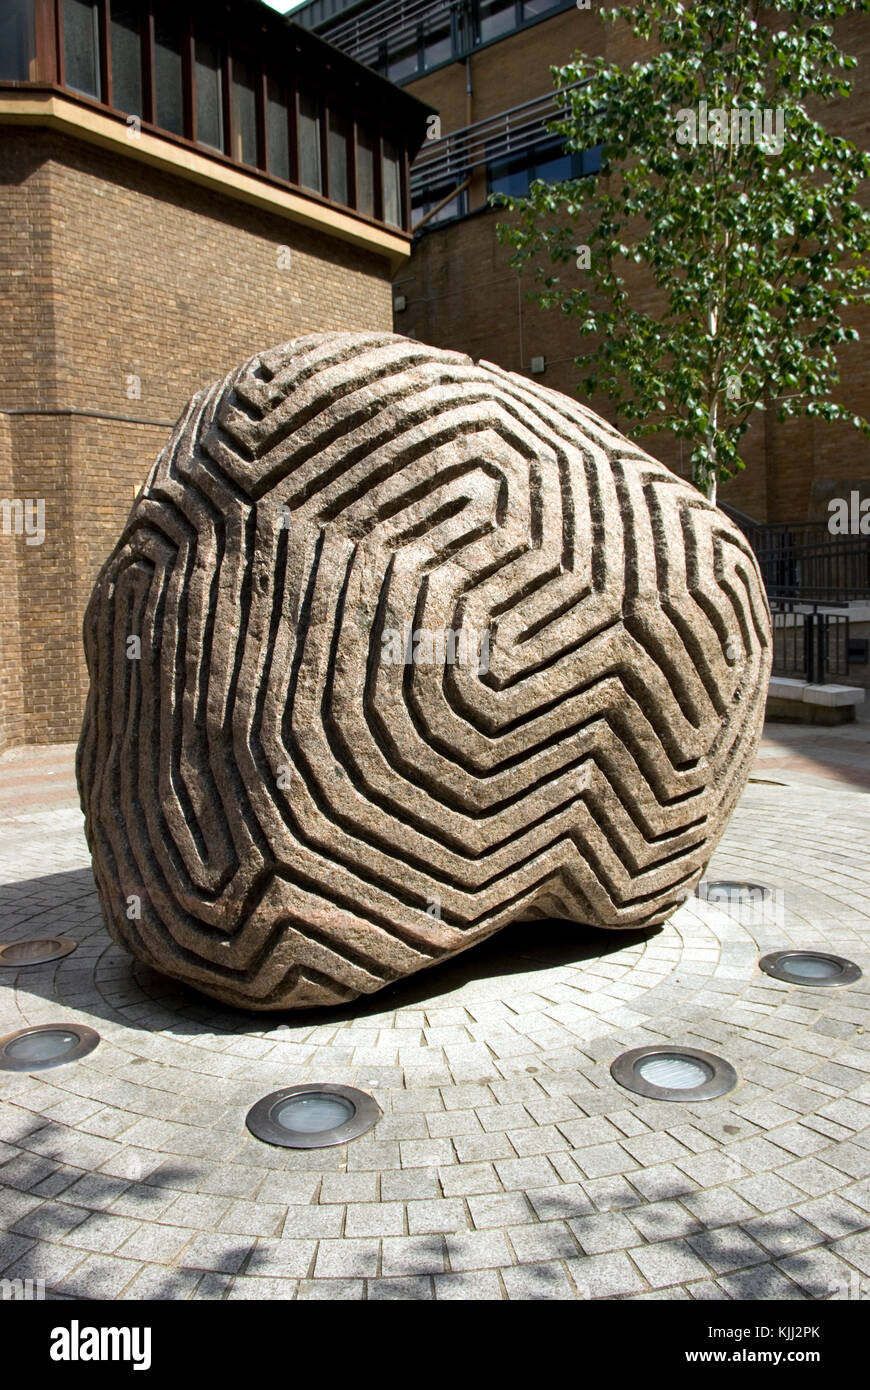 Sculpture by  Peter Randall-Page - Stock Image